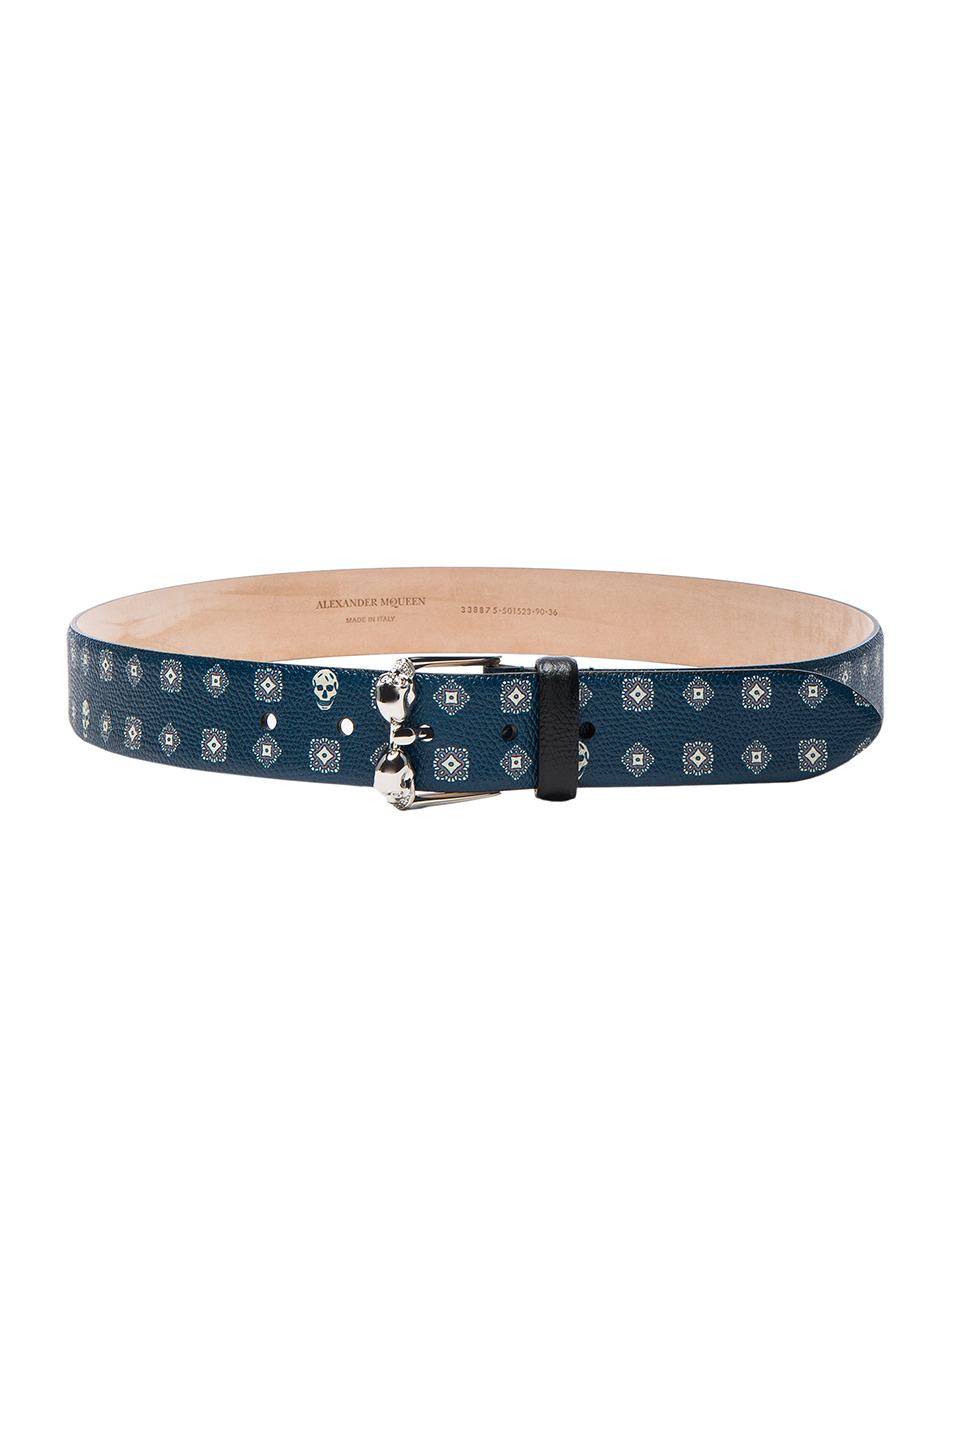 Alexander McQueen Double Buckle Skull Belt in Blue,Geometric Print